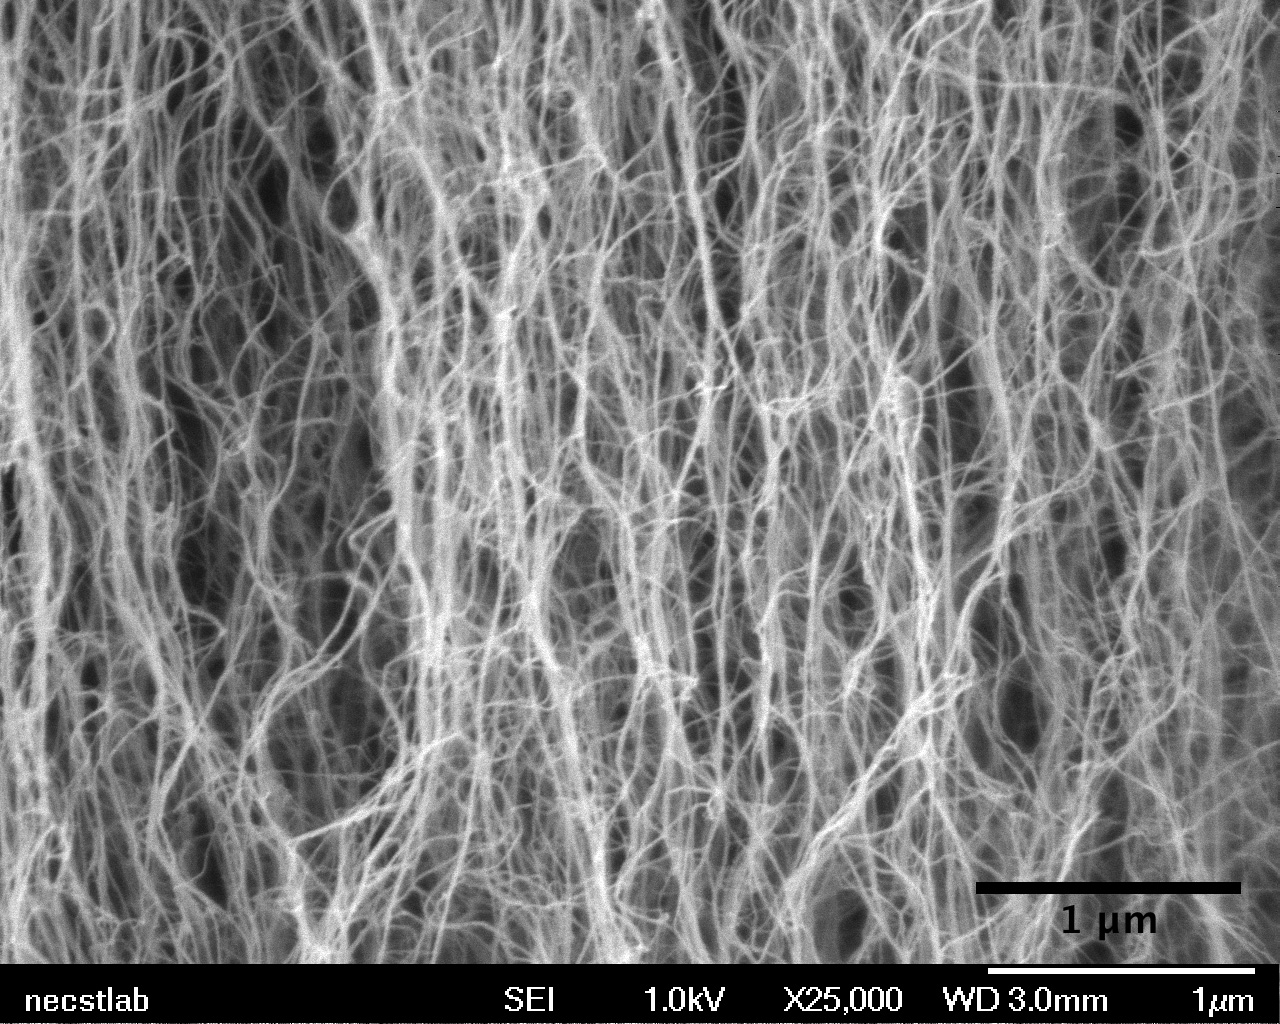 A zoomed in view of carbon nanotubes, showing individual tubes - Image Credits: MIT